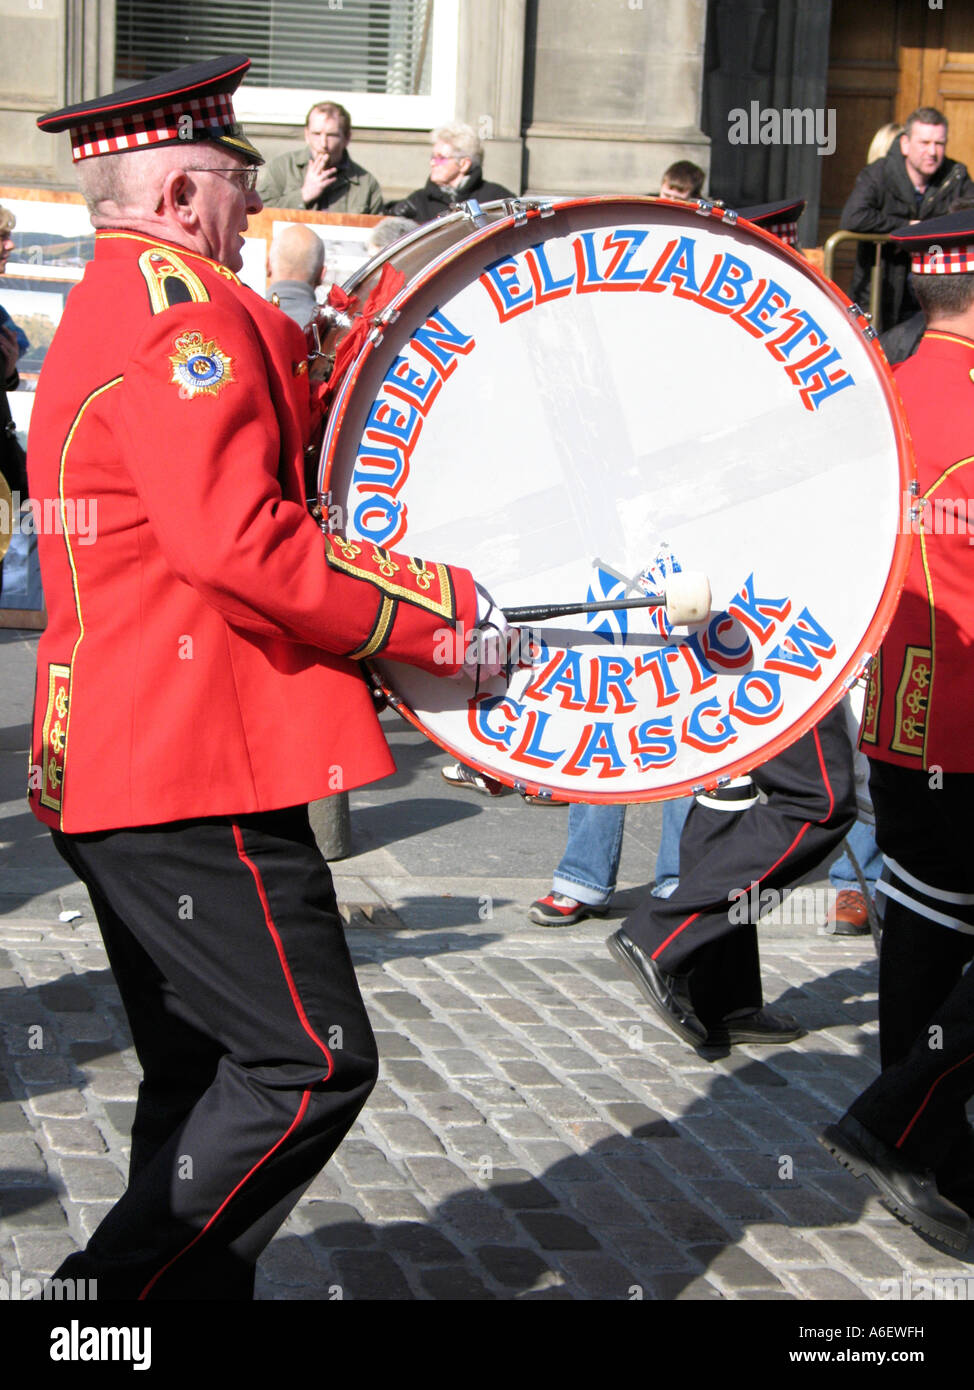 The Orange Order parade through Edinburgh on the 24th March 2007 - Stock Image